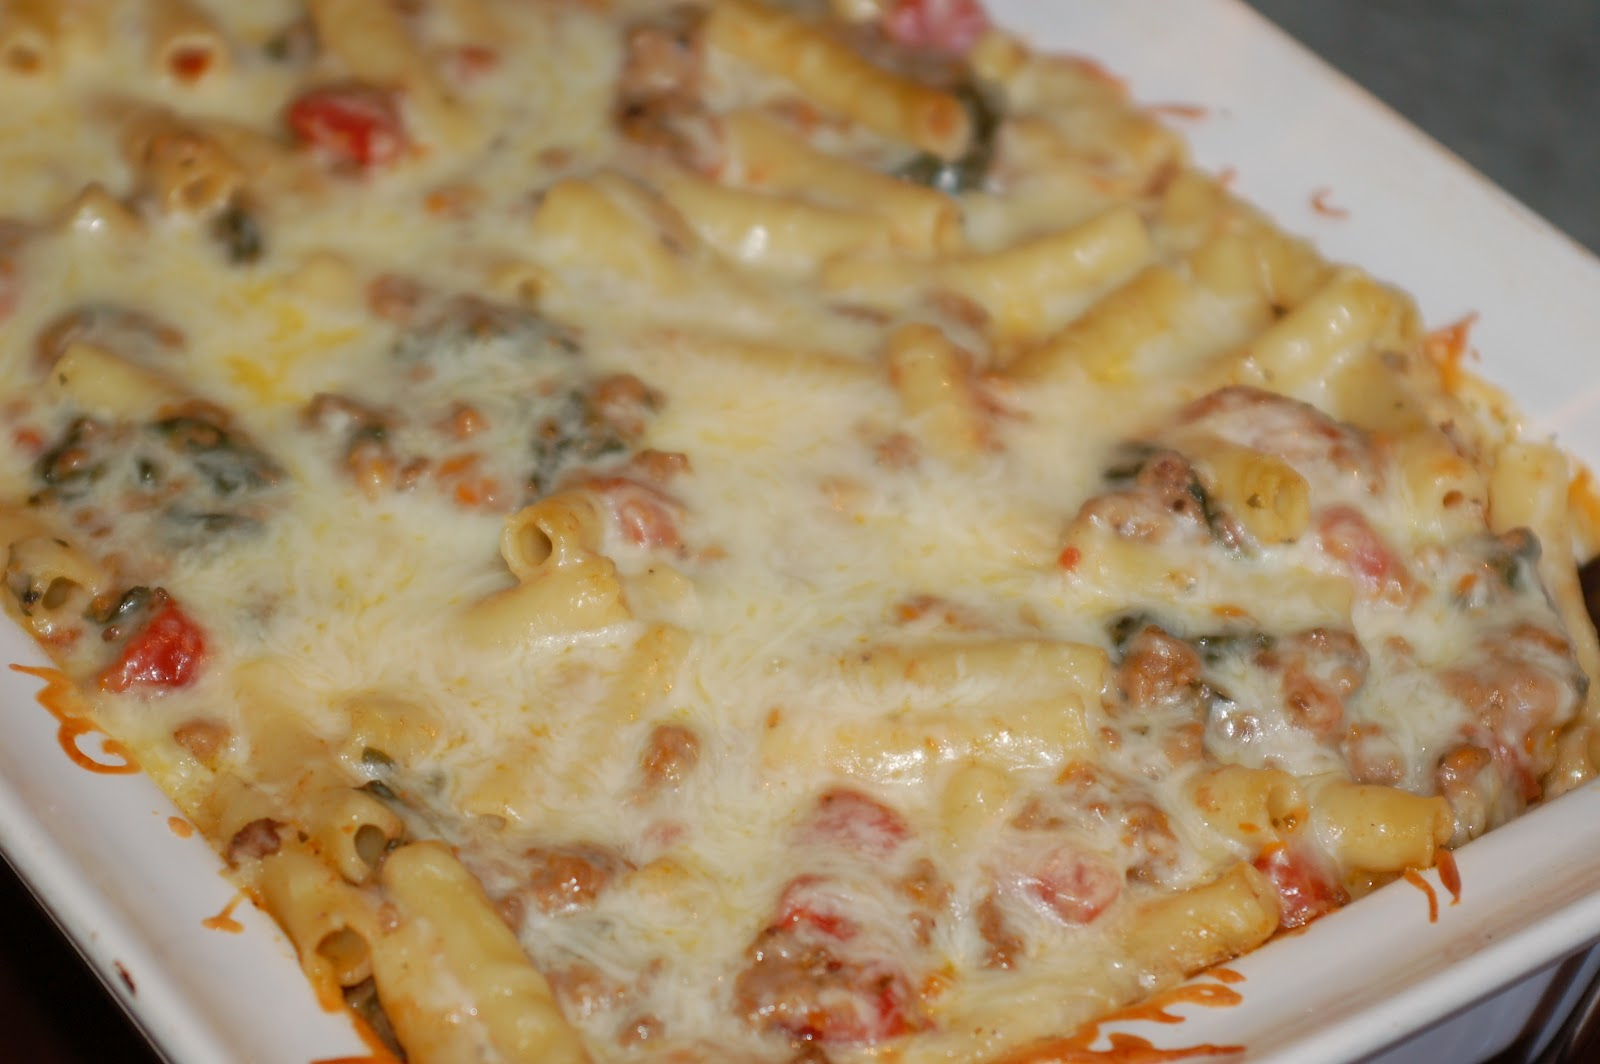 Let's Eat: Baked Ziti With Spinach